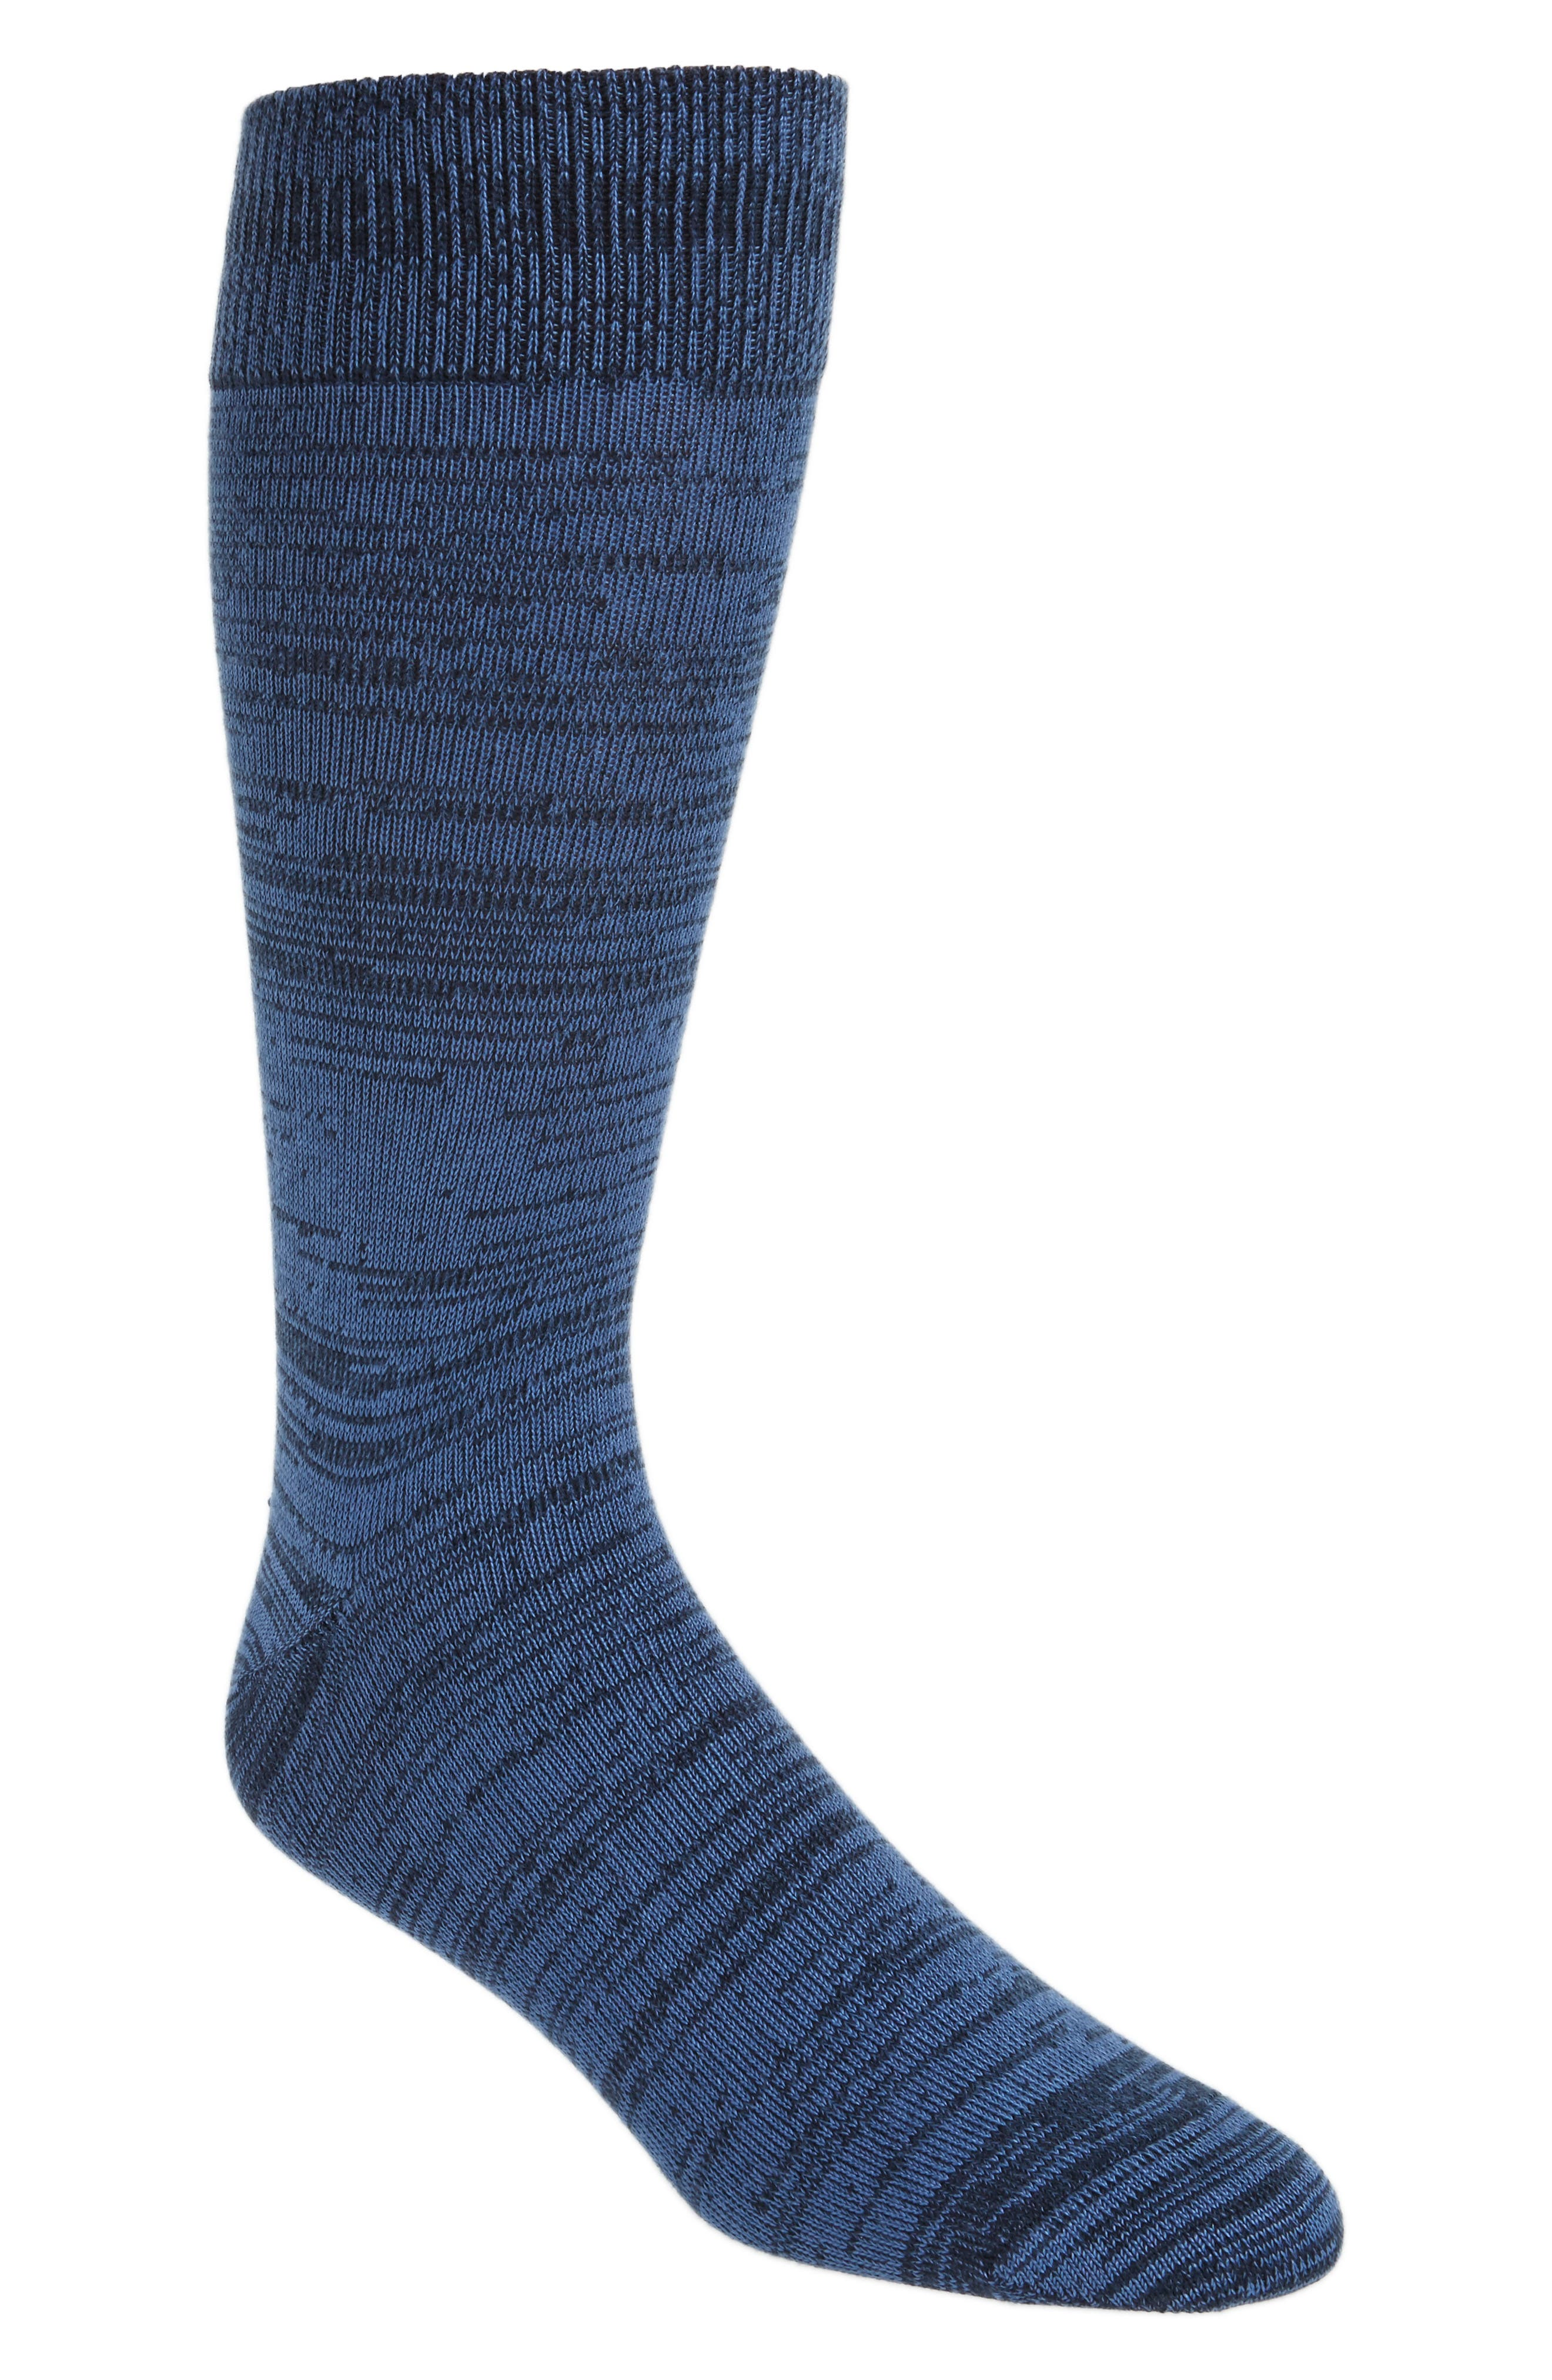 Ultra Soft Space Dye Socks,                             Main thumbnail 1, color,                             410